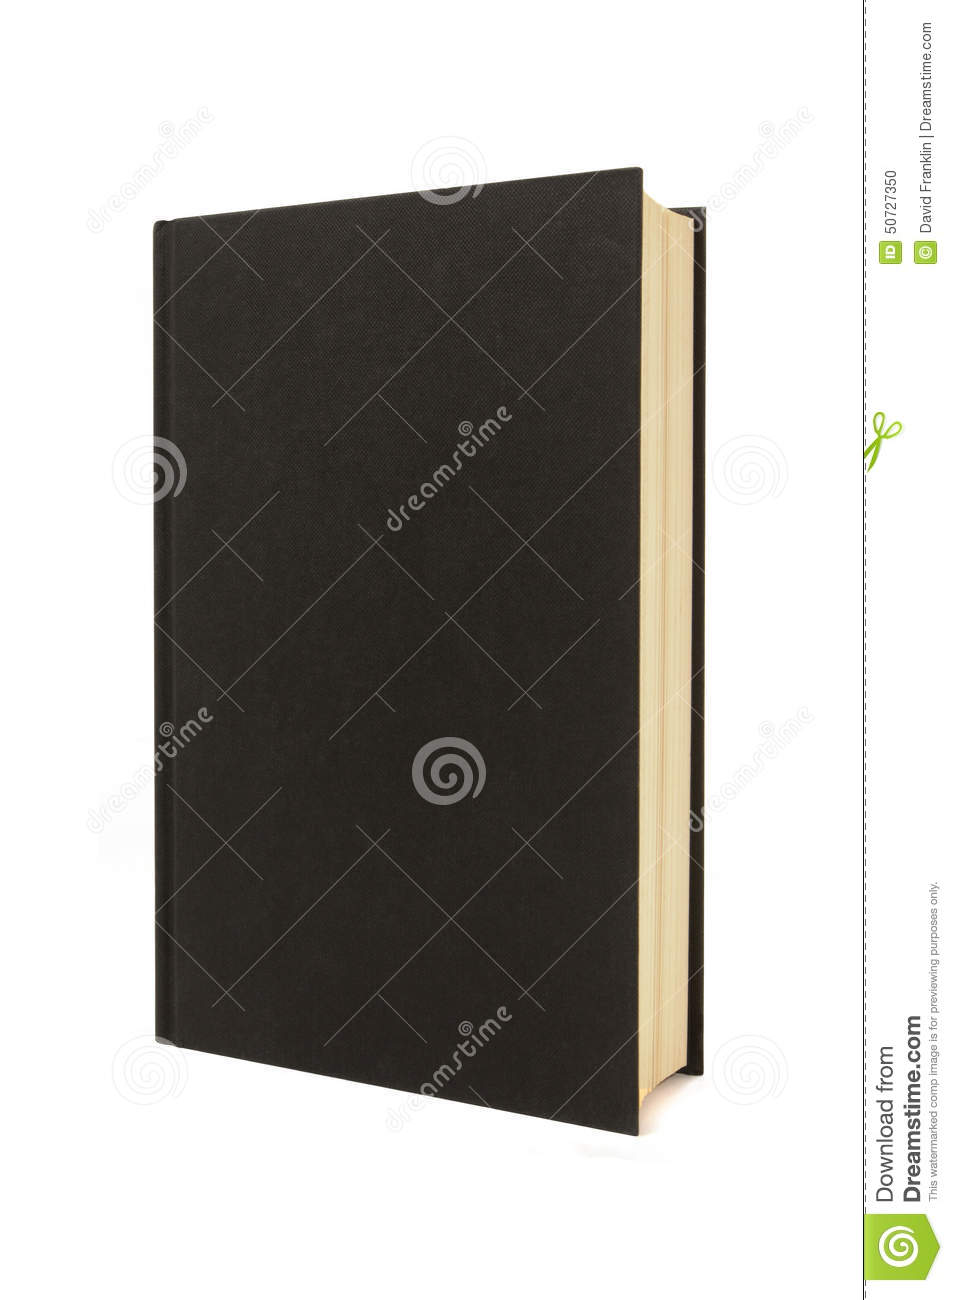 Vertical blank black hardback book or bible standing upright isolated on white background